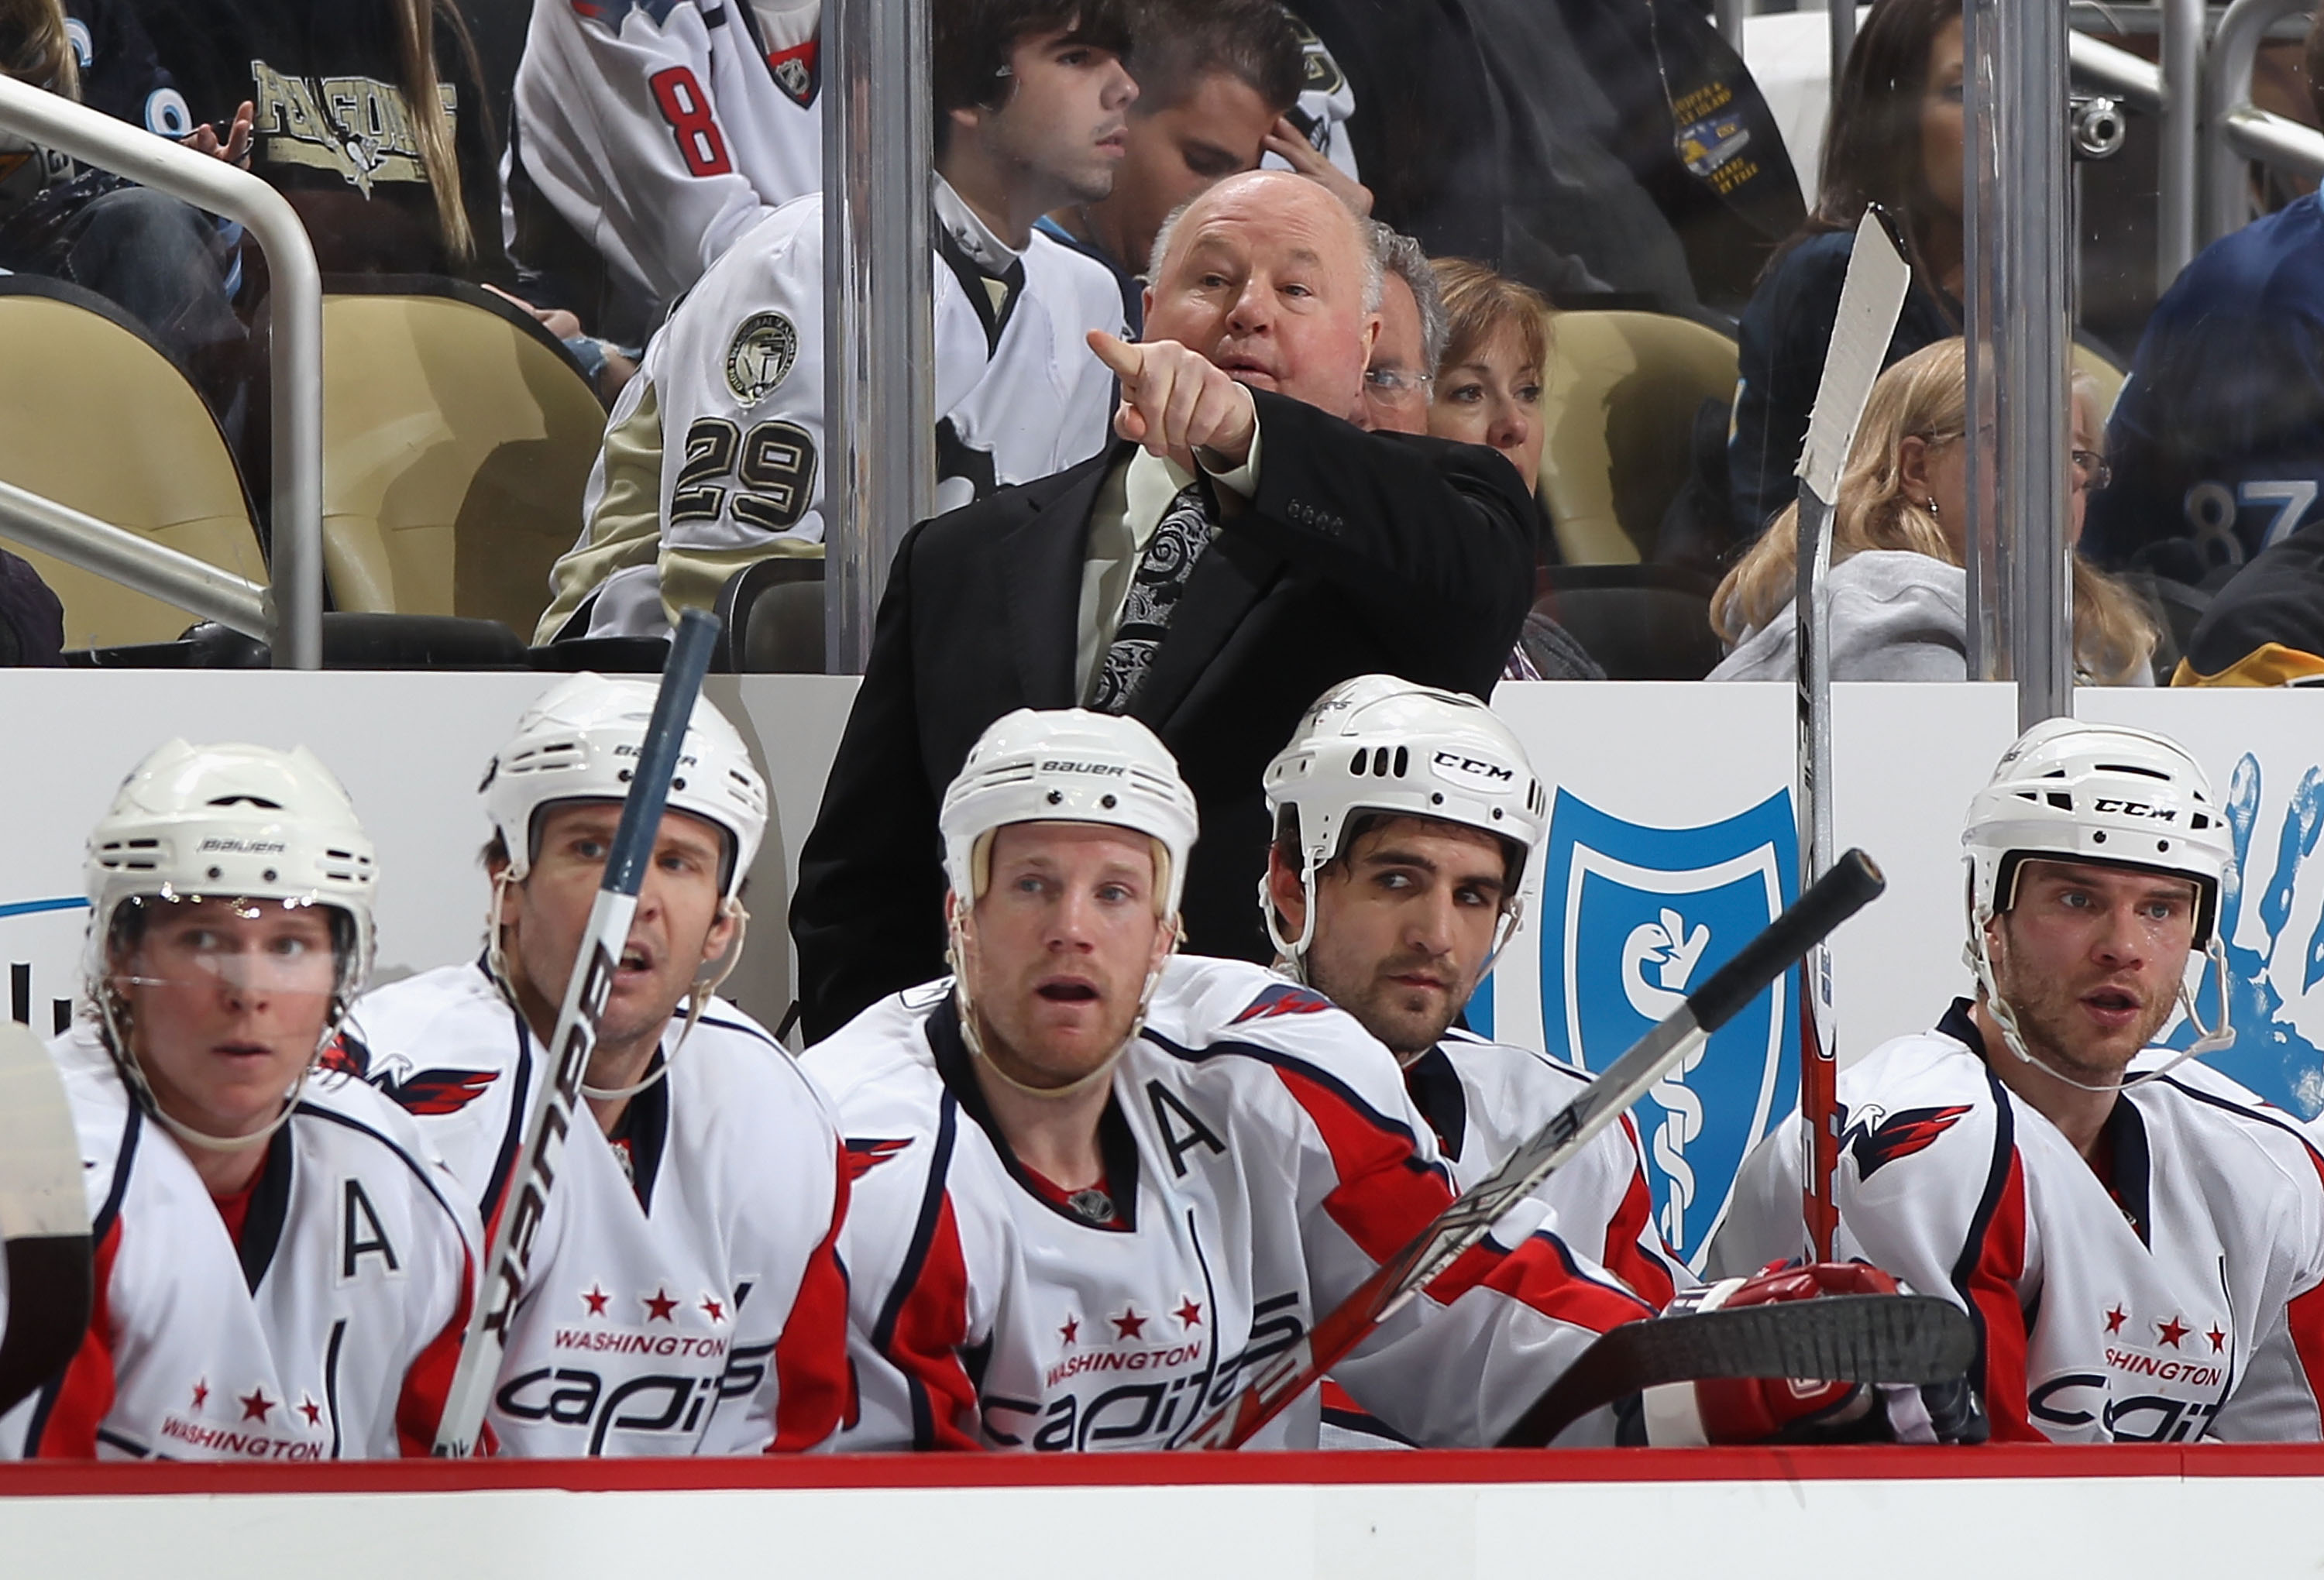 PITTSBURGH, PA - FEBRUARY 21:  Head coach Bruce Boudreau of the Washington Capitals directs his team during the NHL game against the Pittsburgh Penguins at Consol Energy Center on February 21, 2011 in Pittsburgh, Pennsylvania. The Capitals defeated the Pe